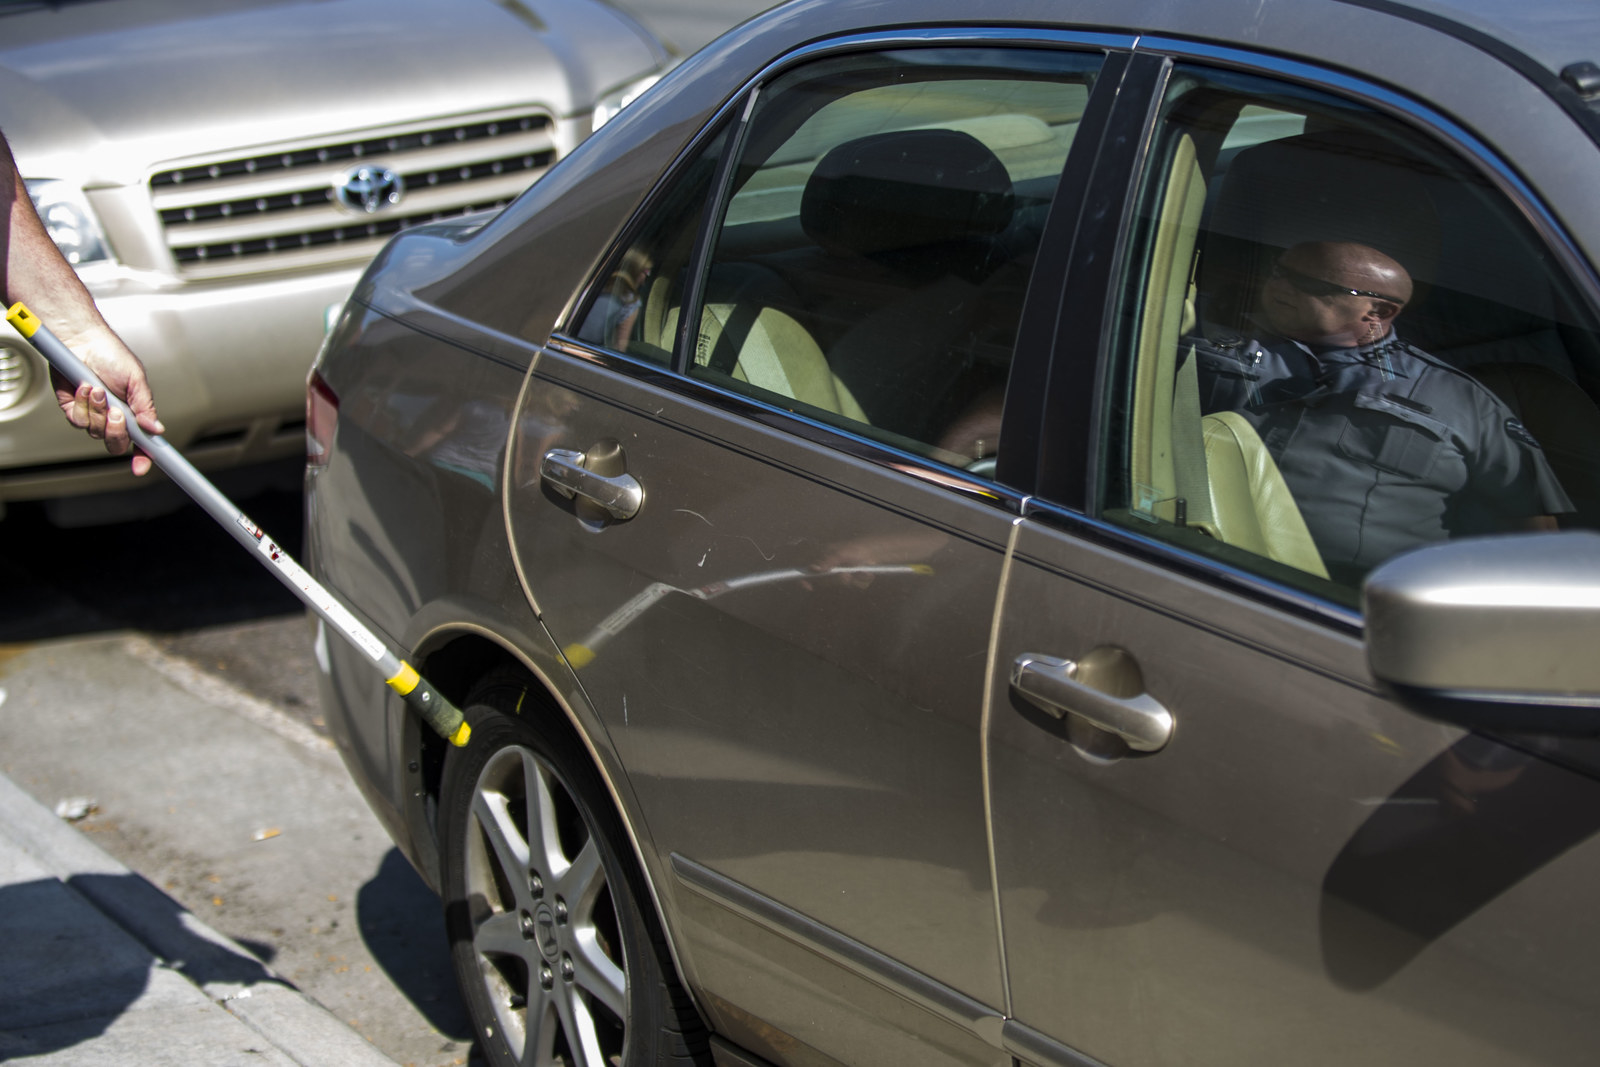 Federal Court Rules Chalking Tires Of Parked Cars Is Unconstitutional In Michigan